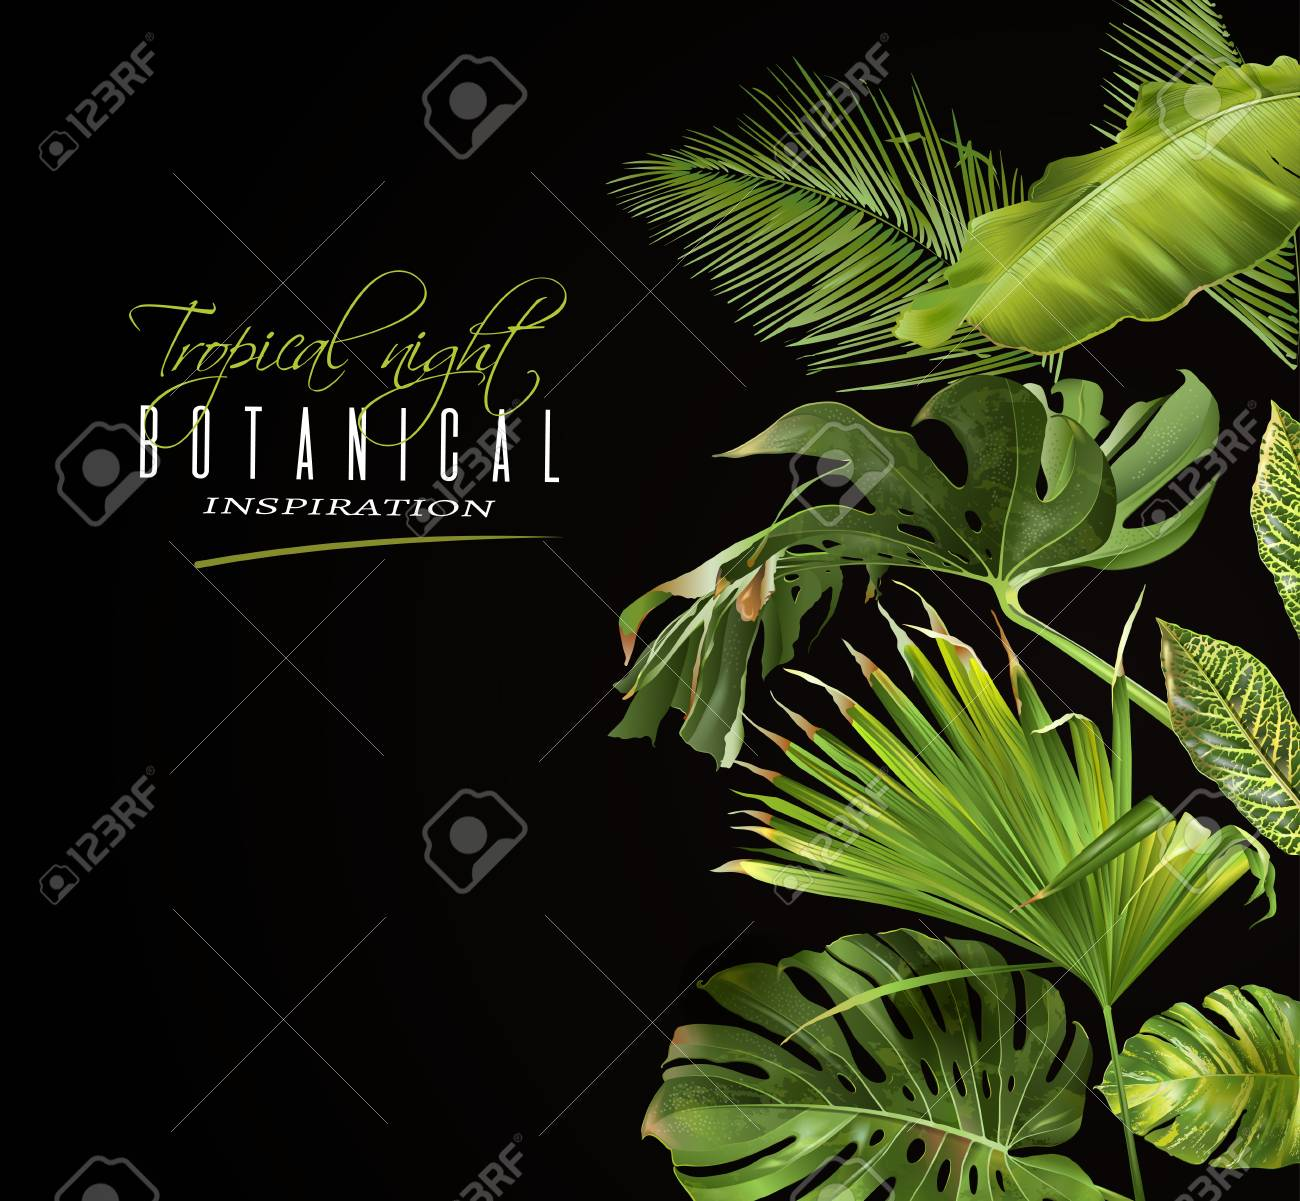 Tropical night banner - 89408789